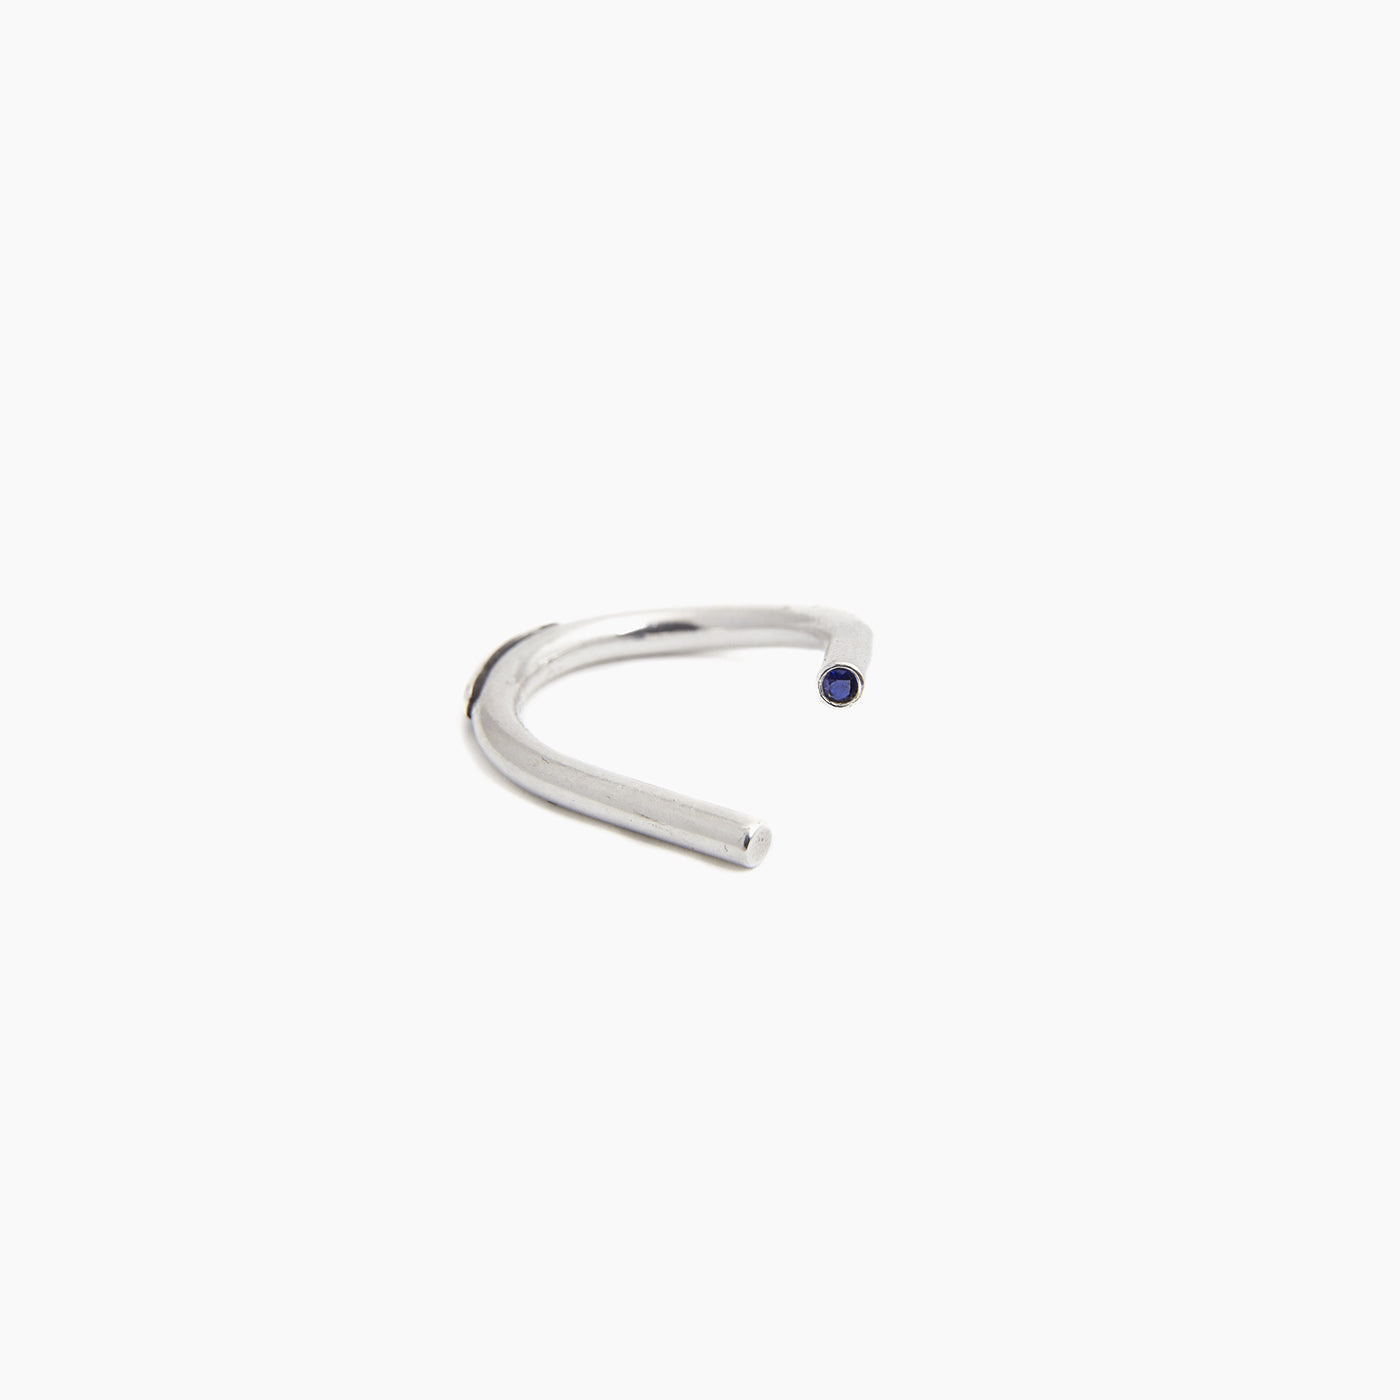 Chaotic Curve Ring BS